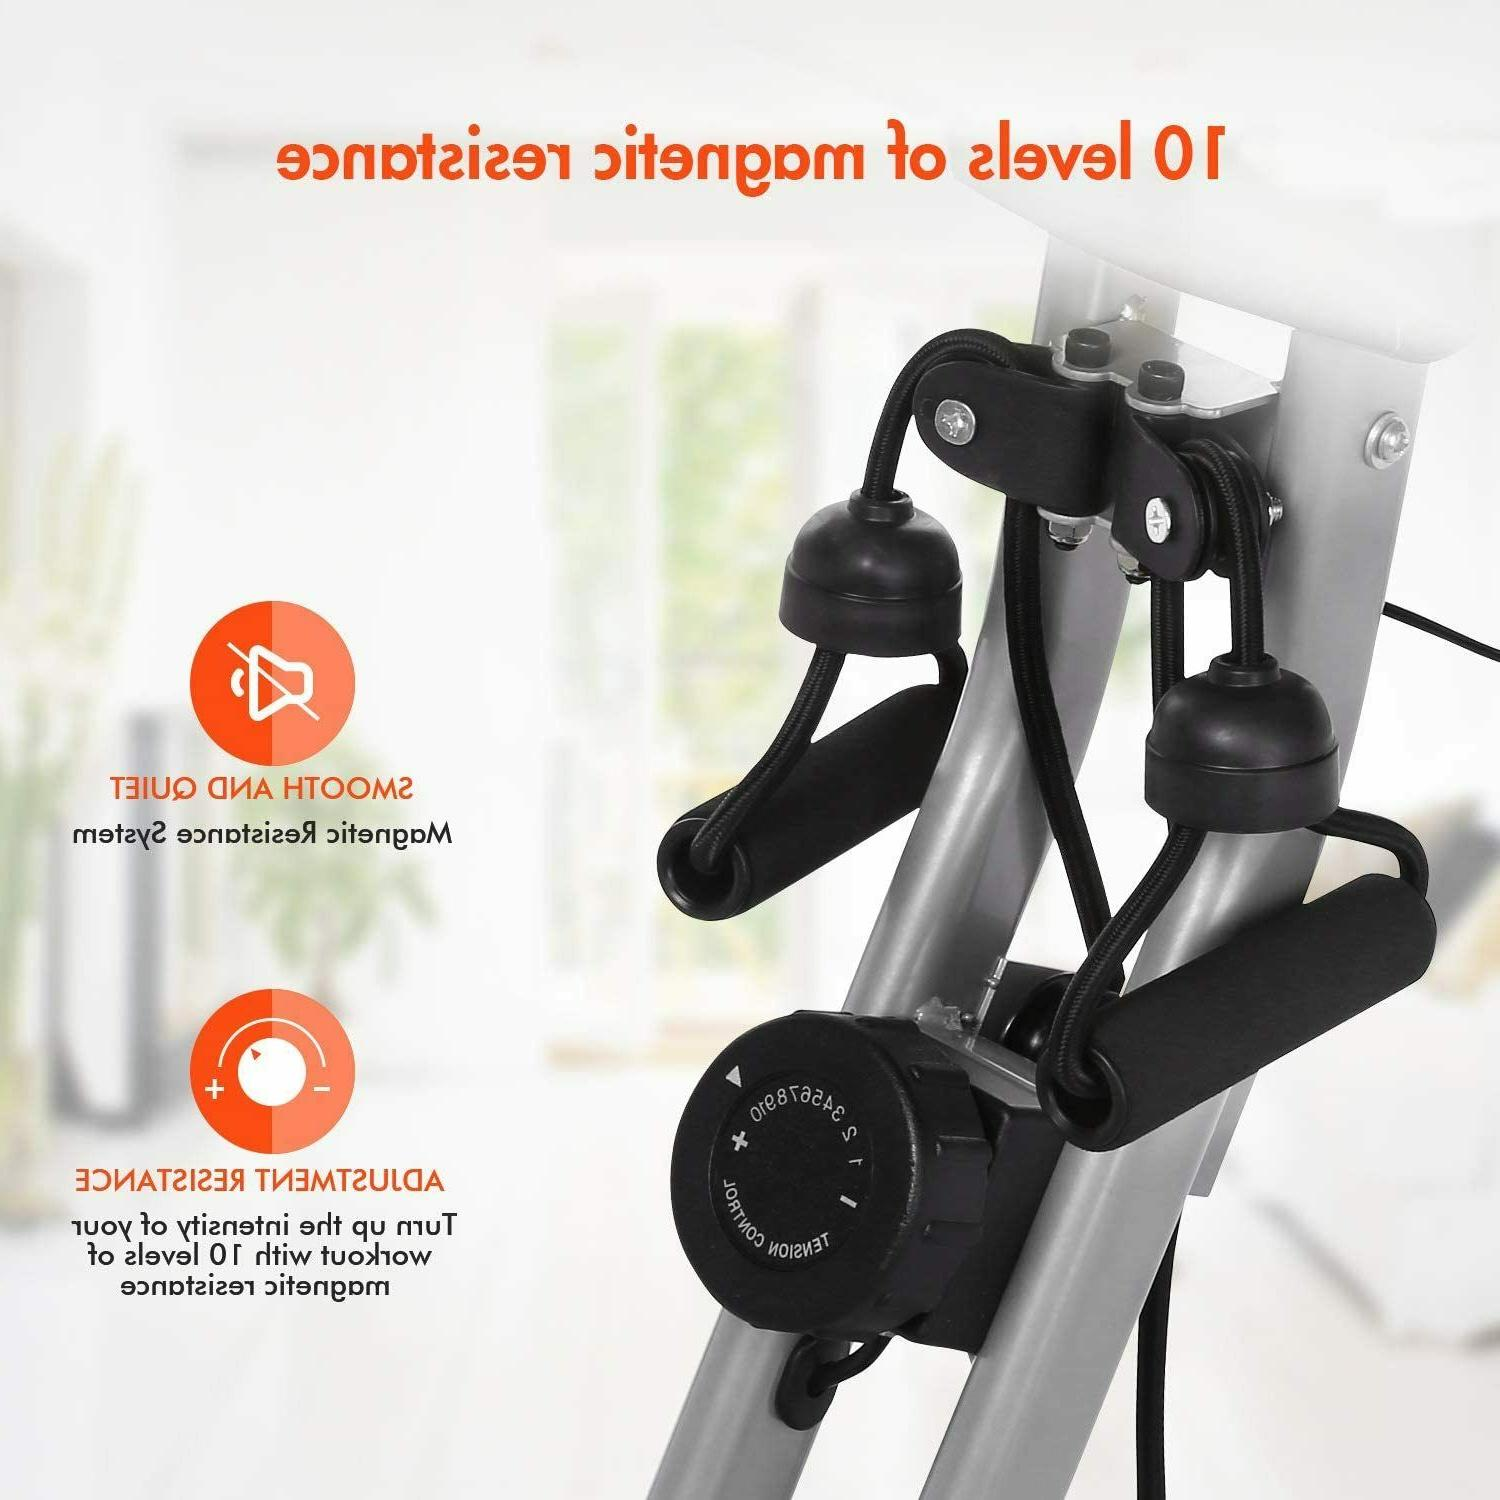 ANCHEER Folding Bike 3-in-1 Magnetic w/ LCD